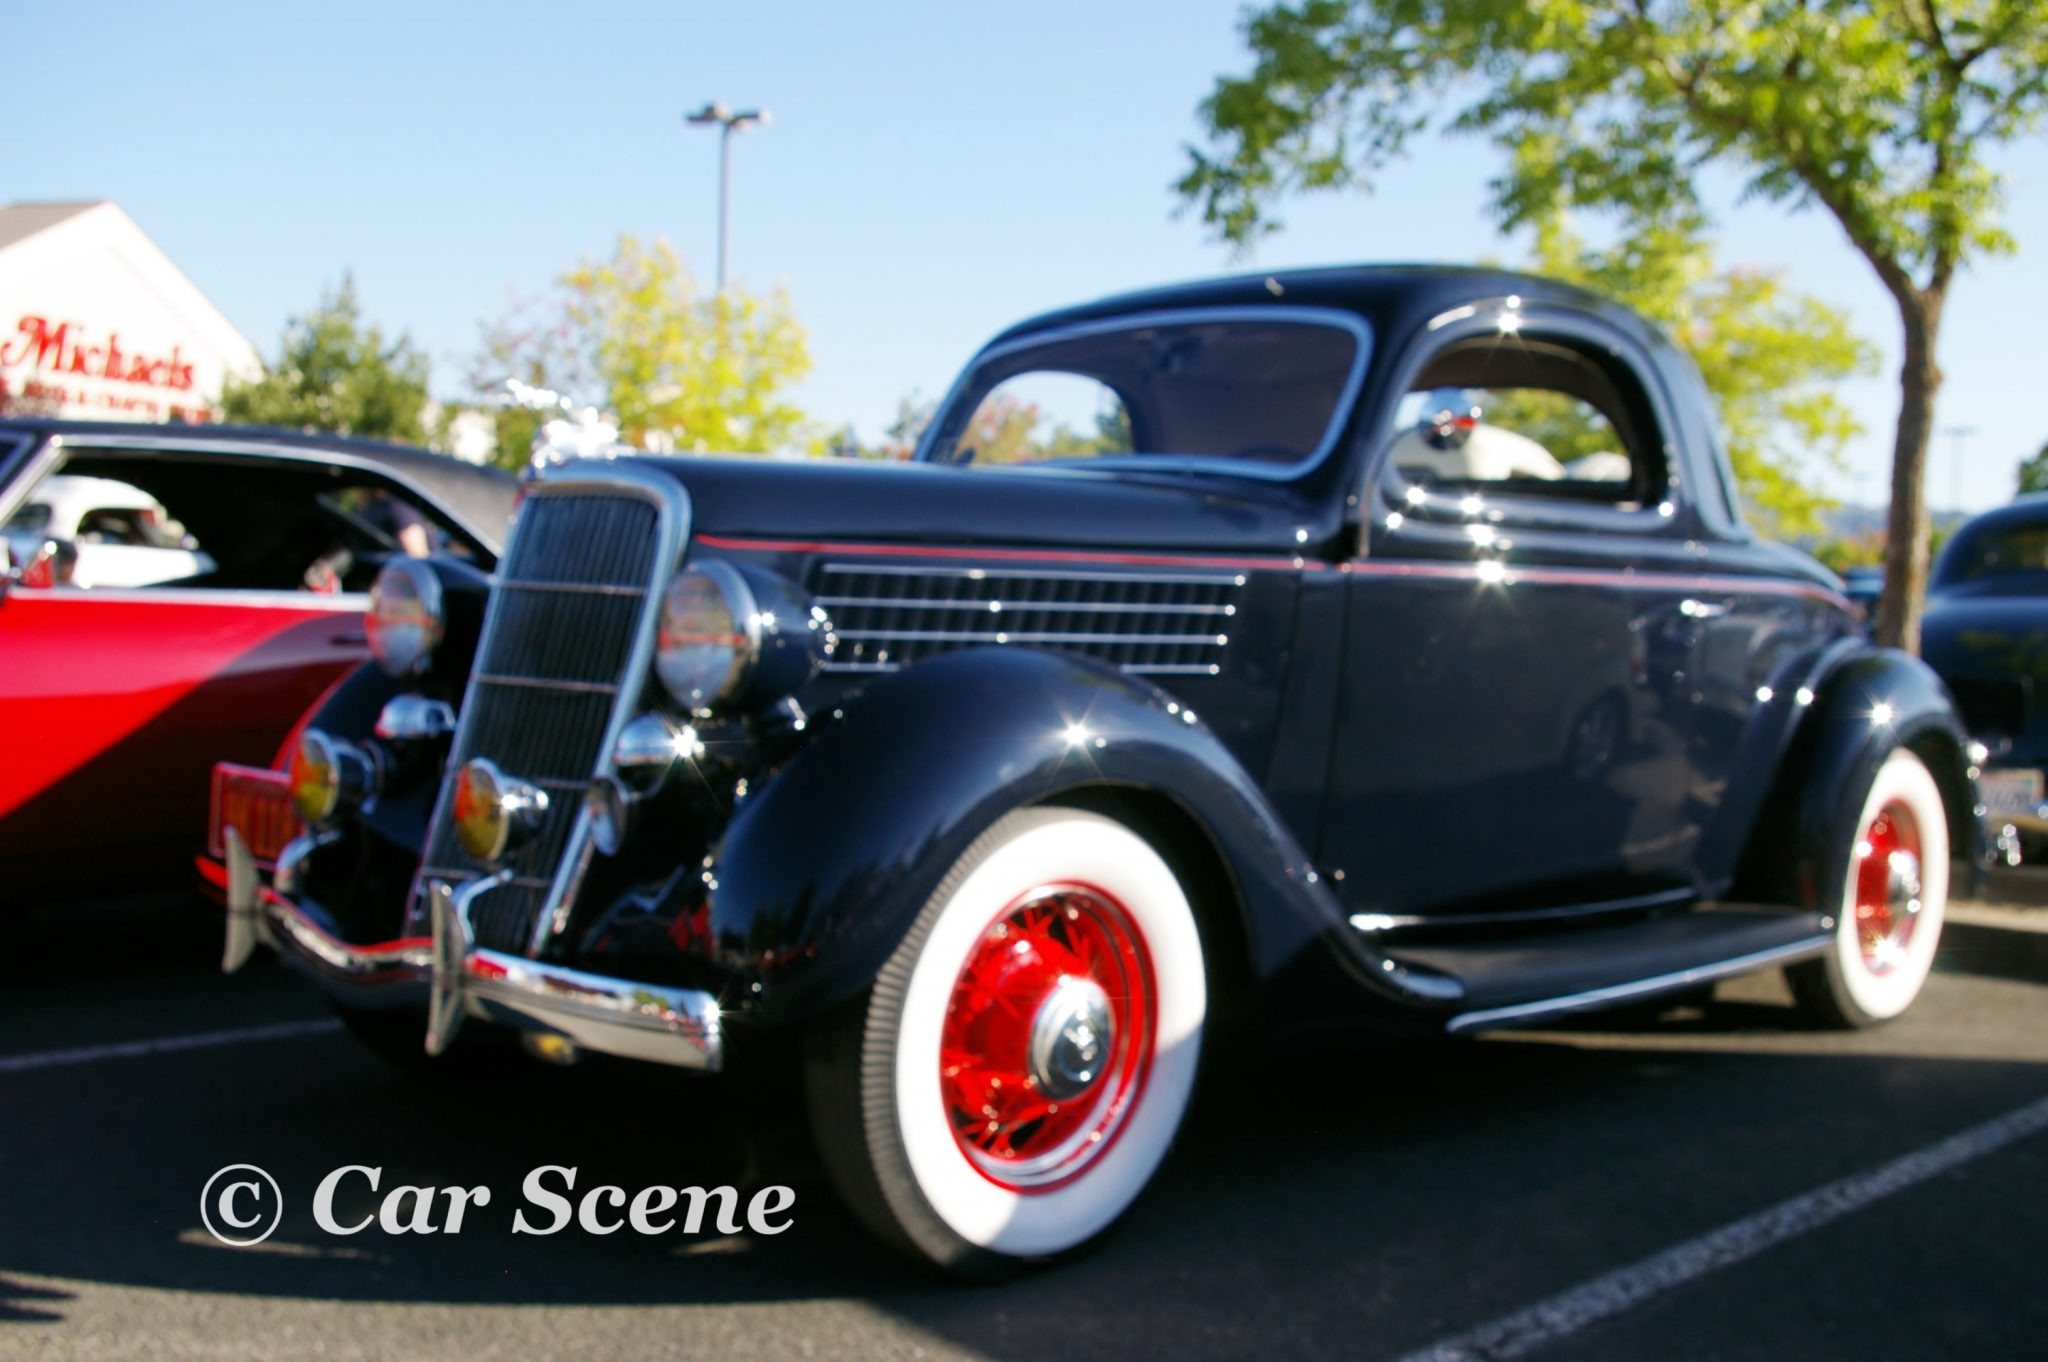 1935 Ford Model 48 Coupe front three quarters view